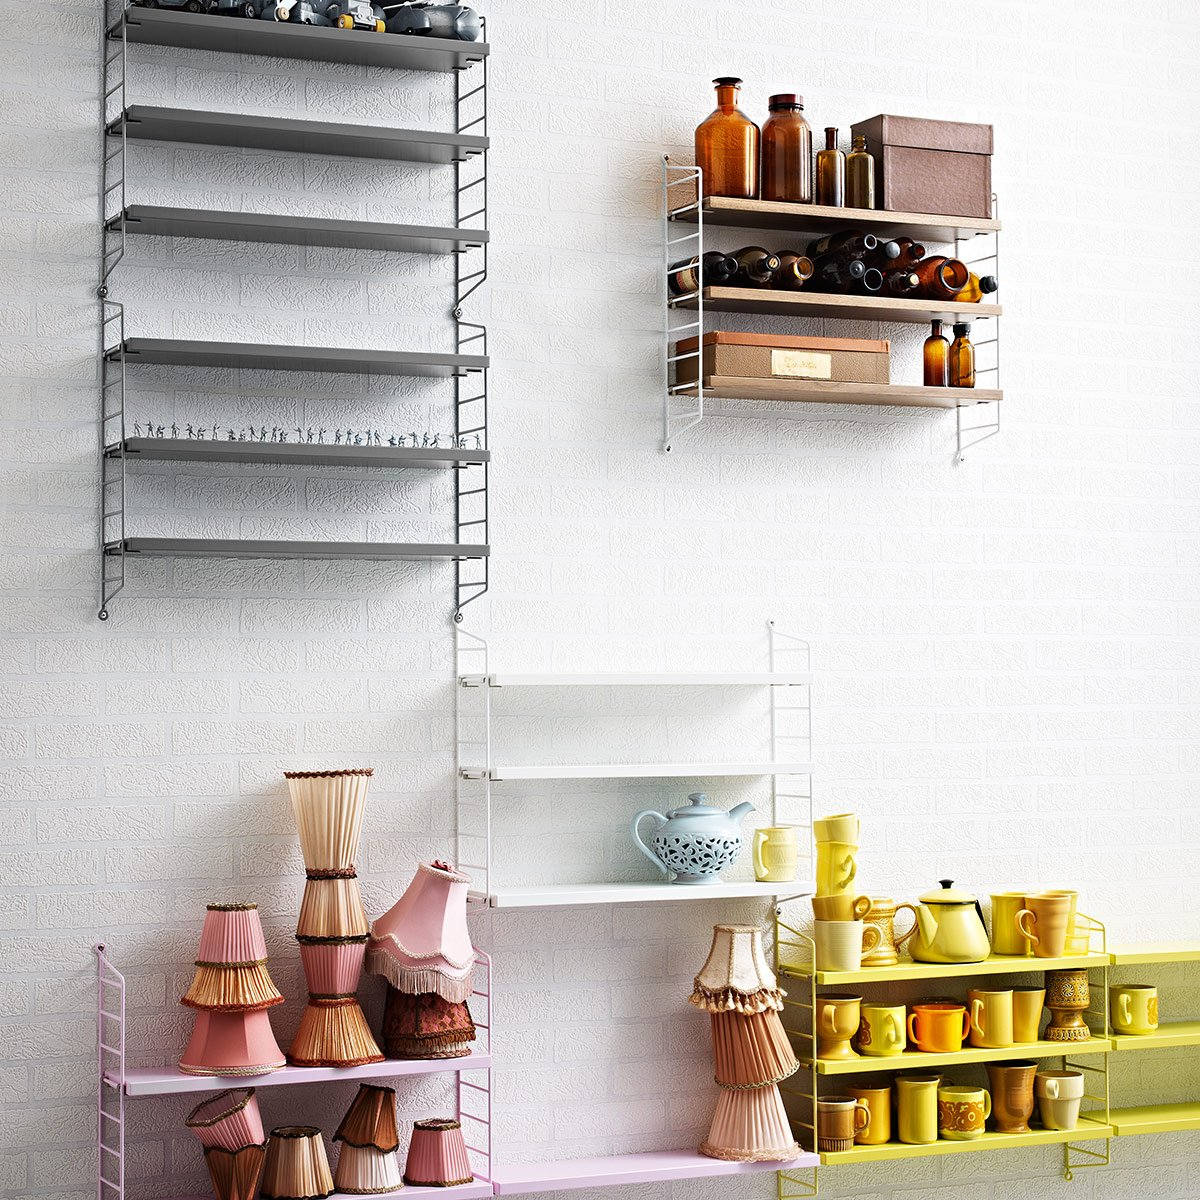 String Pocket Shelf 60x50x15cm White/lacquered/WxHxD 60x50x15cm:  Amazon.co.uk: Kitchen U0026 Home